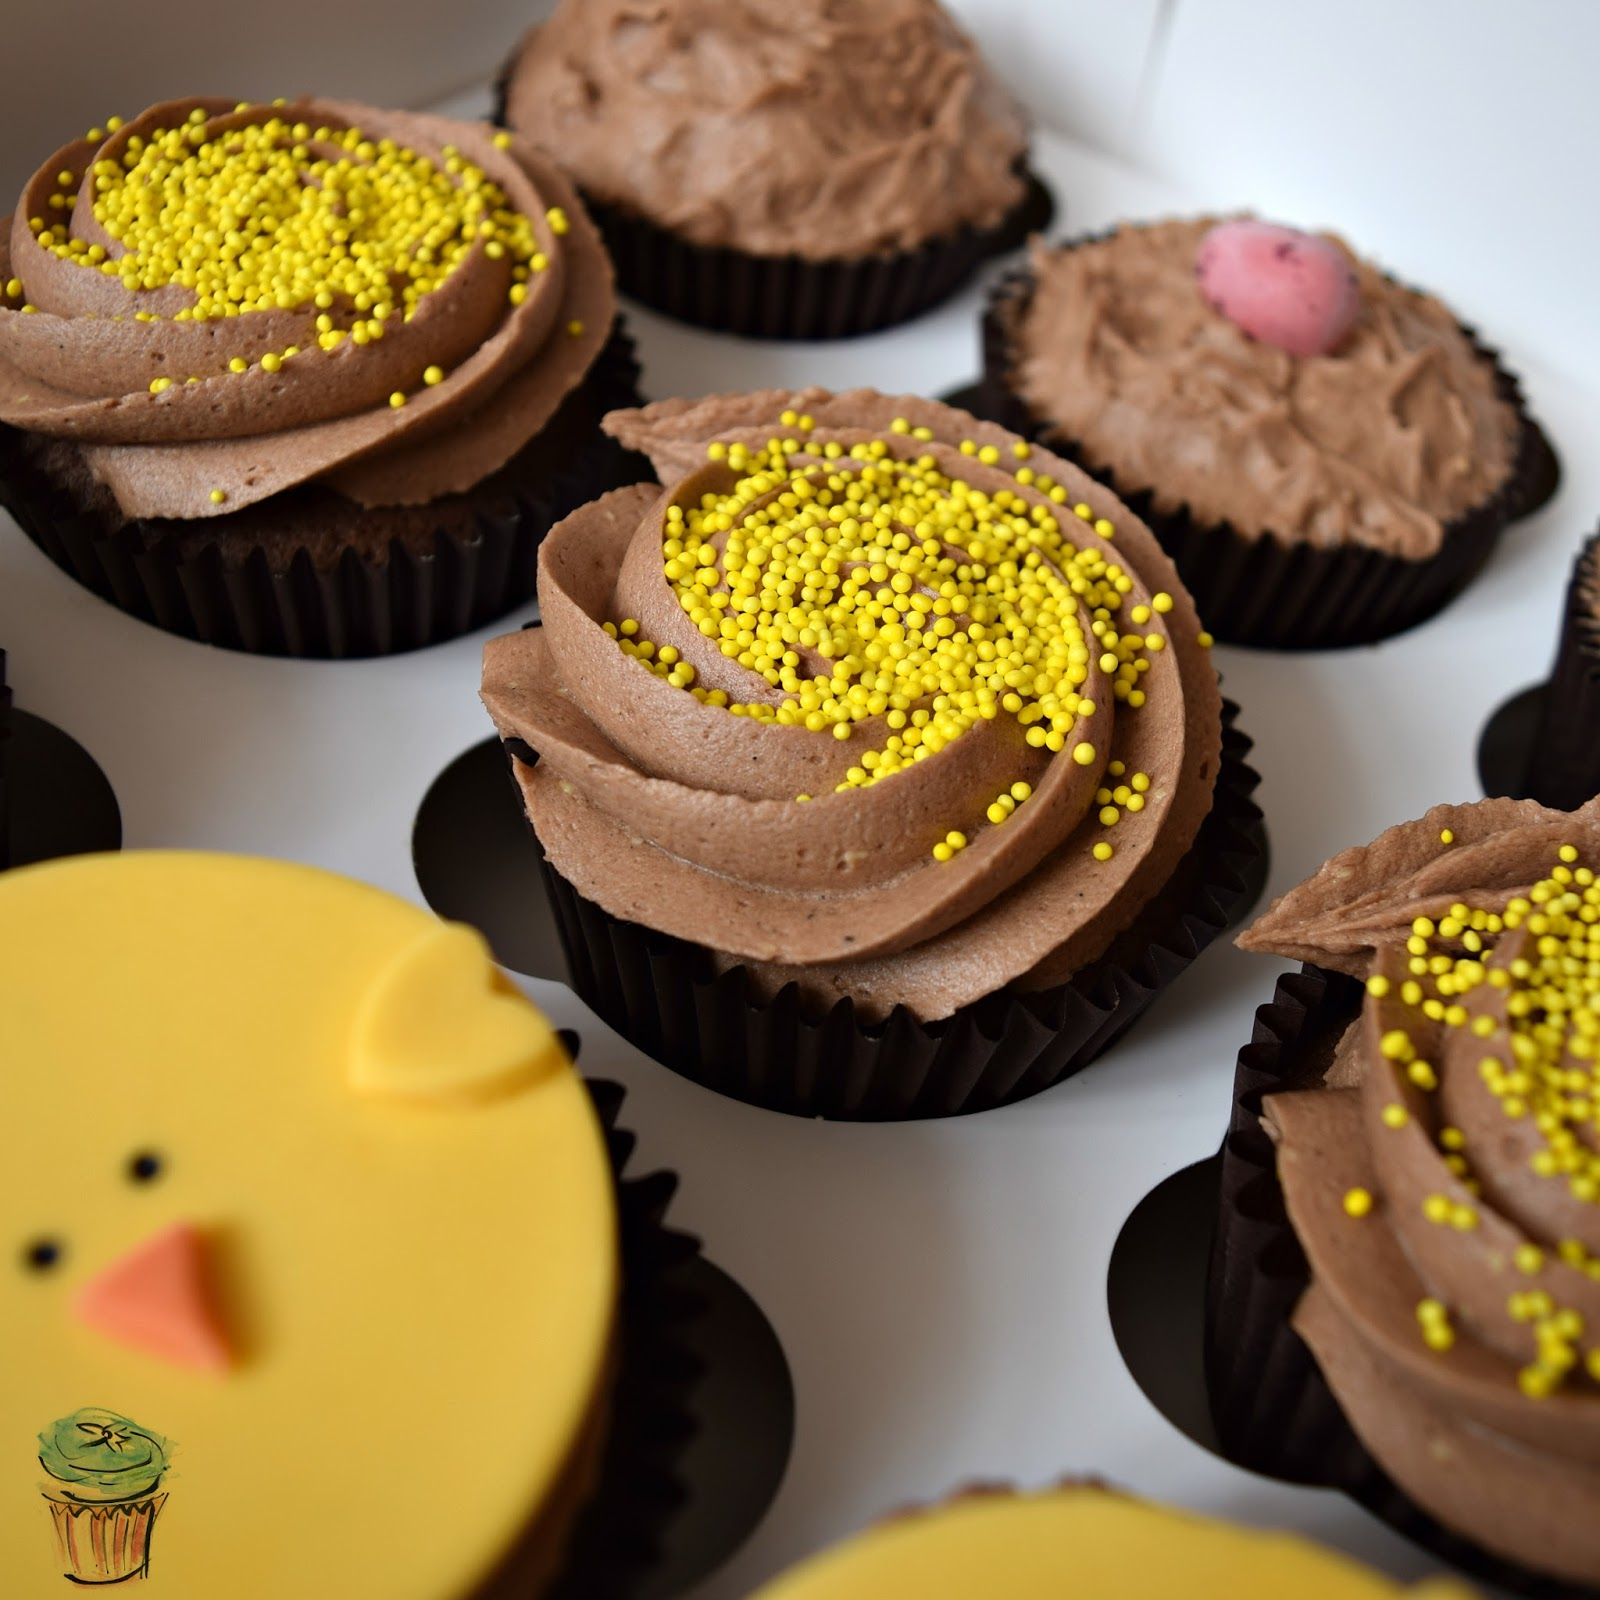 Cupcakes, Chic, Yellow, Chocolate, Easter, 2016, Cute, Easy, Fondant, Face